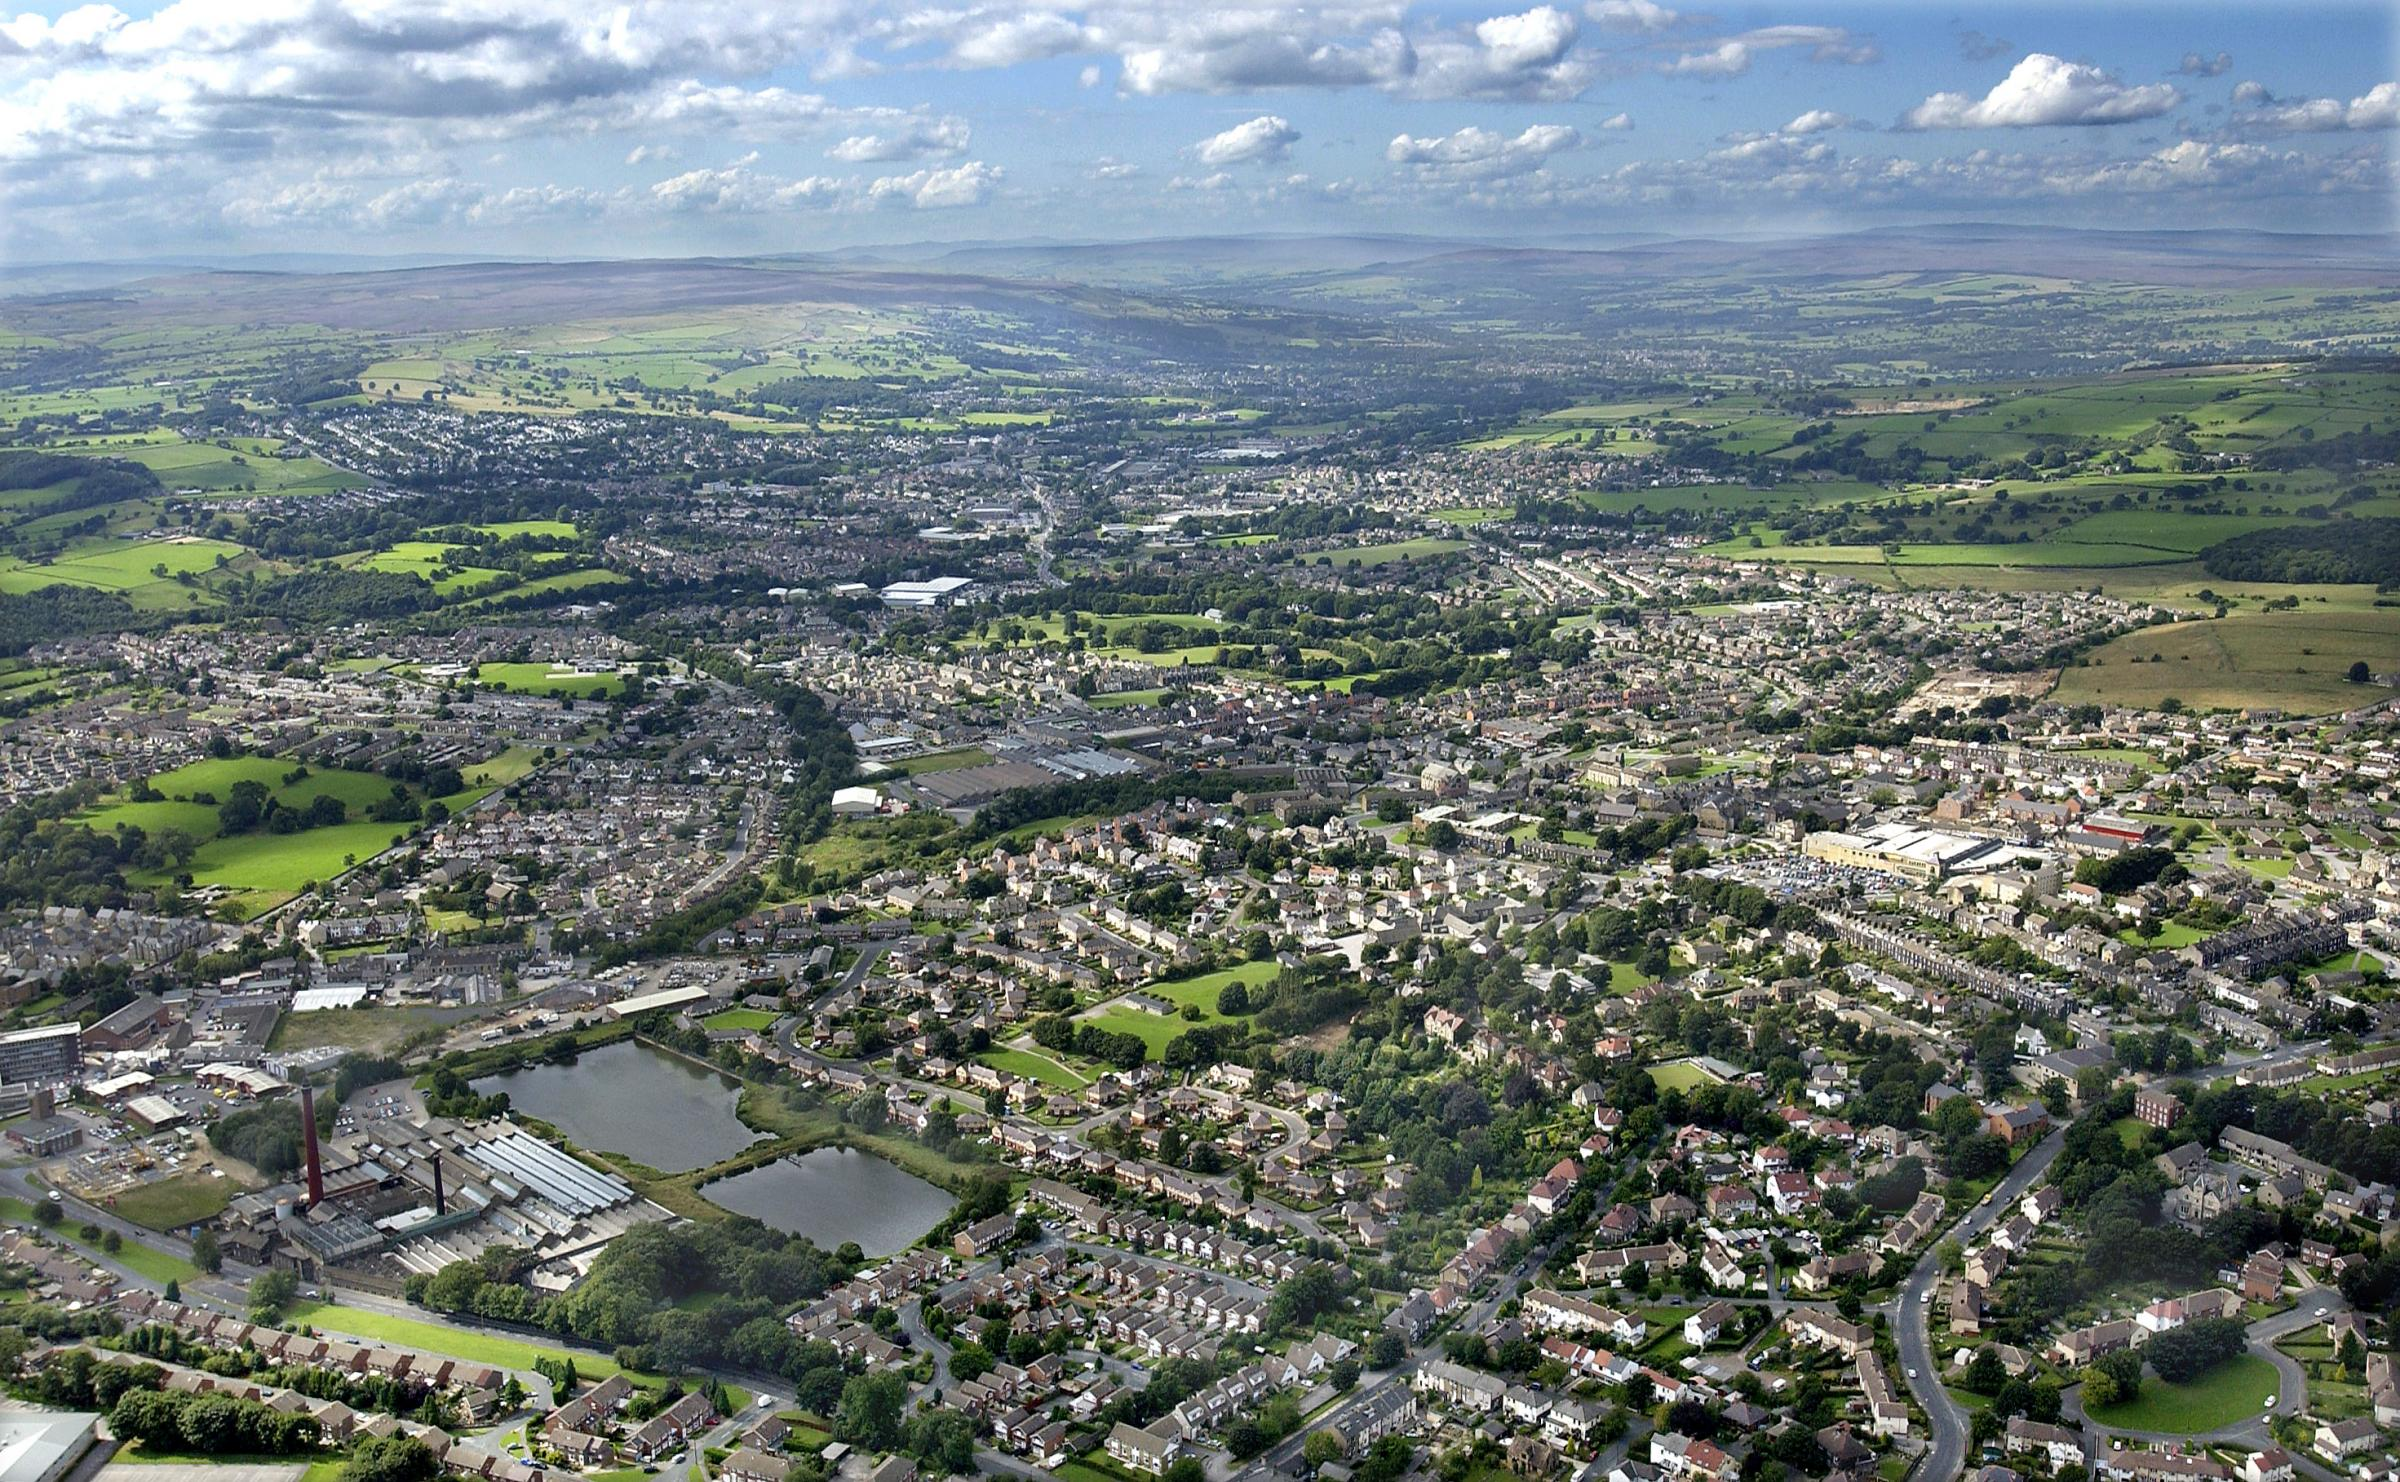 Aerial view of Yeadon